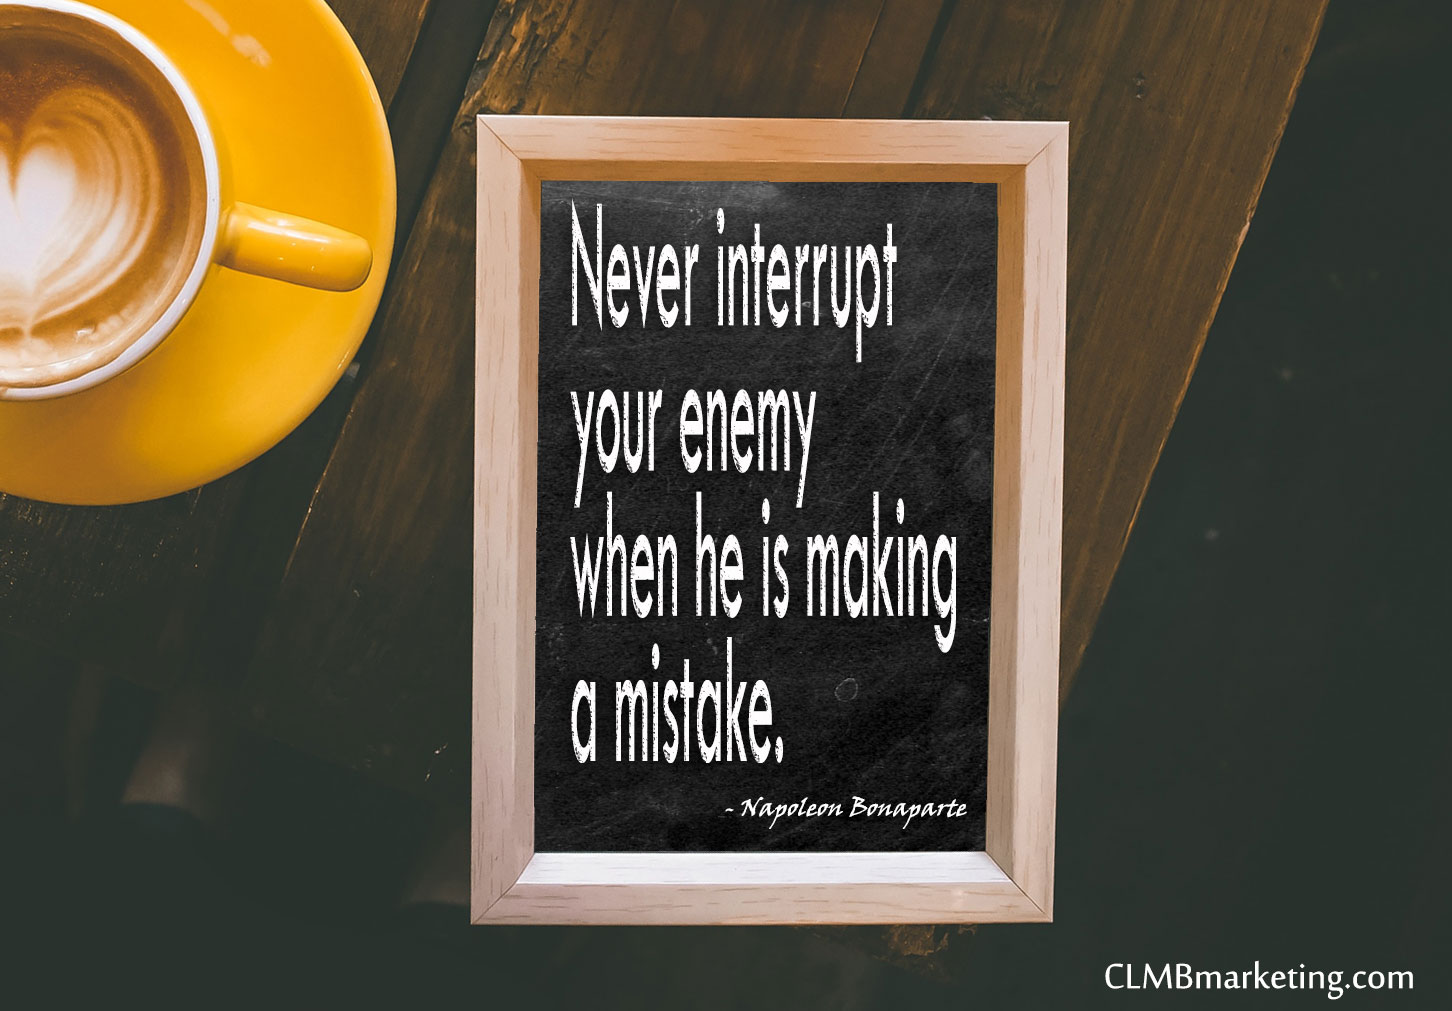 Never interrupt your enemy when he is making a mistake. – Napoleon Bonaparte